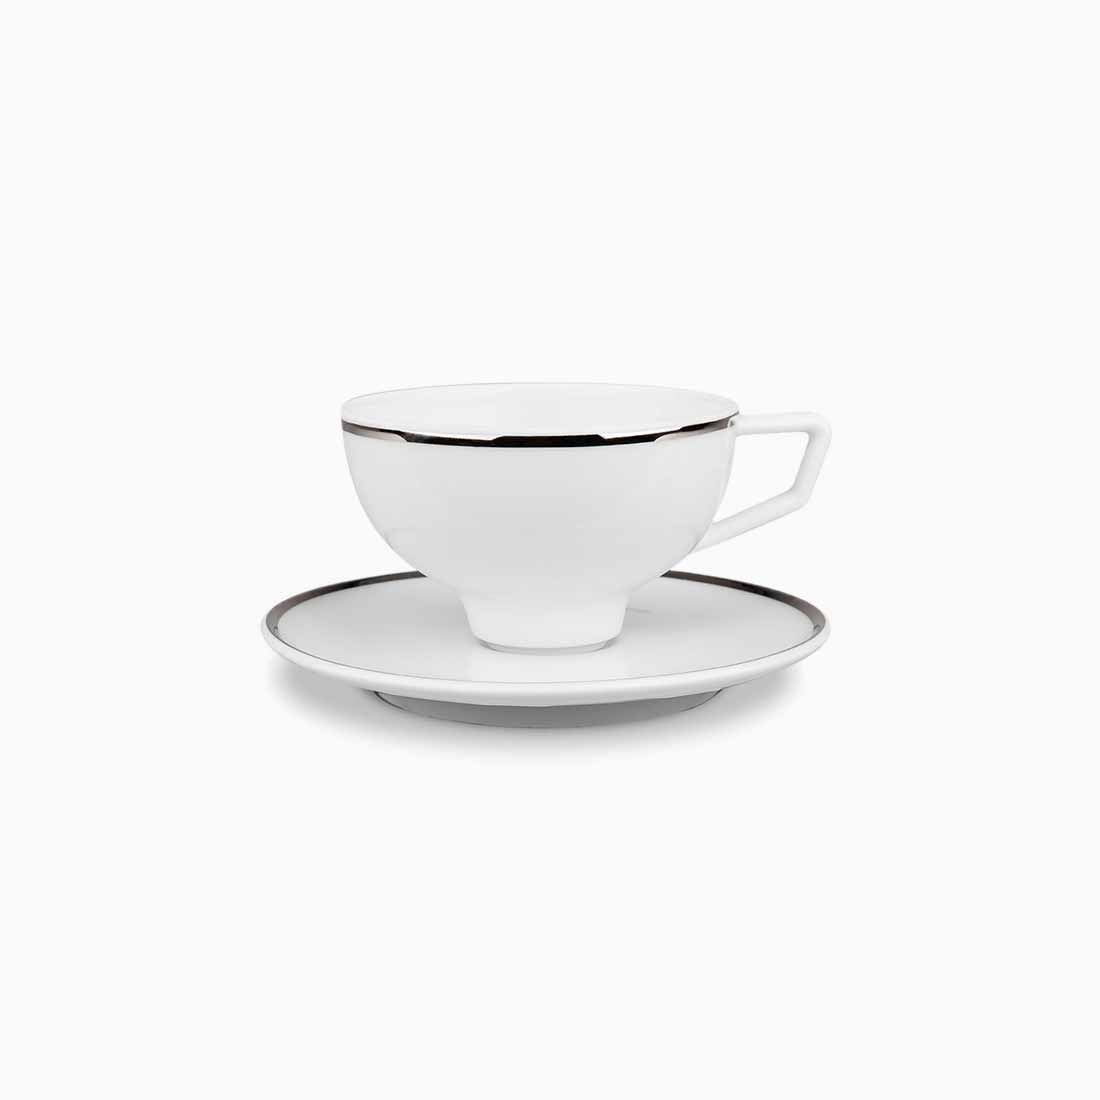 Pomona Espresso Cup and Saucer White with platinum line by Bodo Sperlein